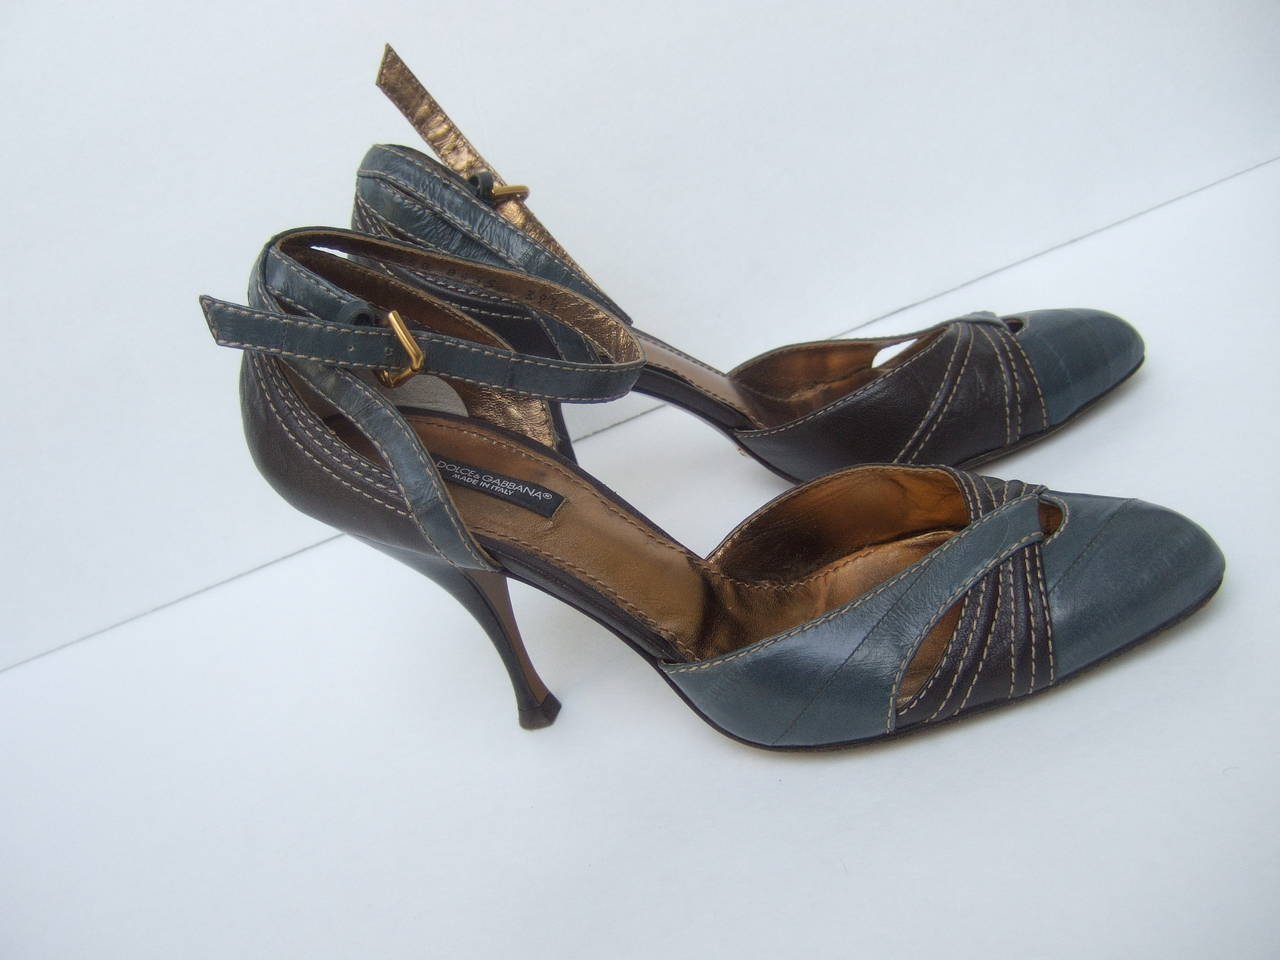 Dolce & Gabbana Gray & Brown Ankle Strap Shoes Size 39.5 Made in Italy For Sale 3